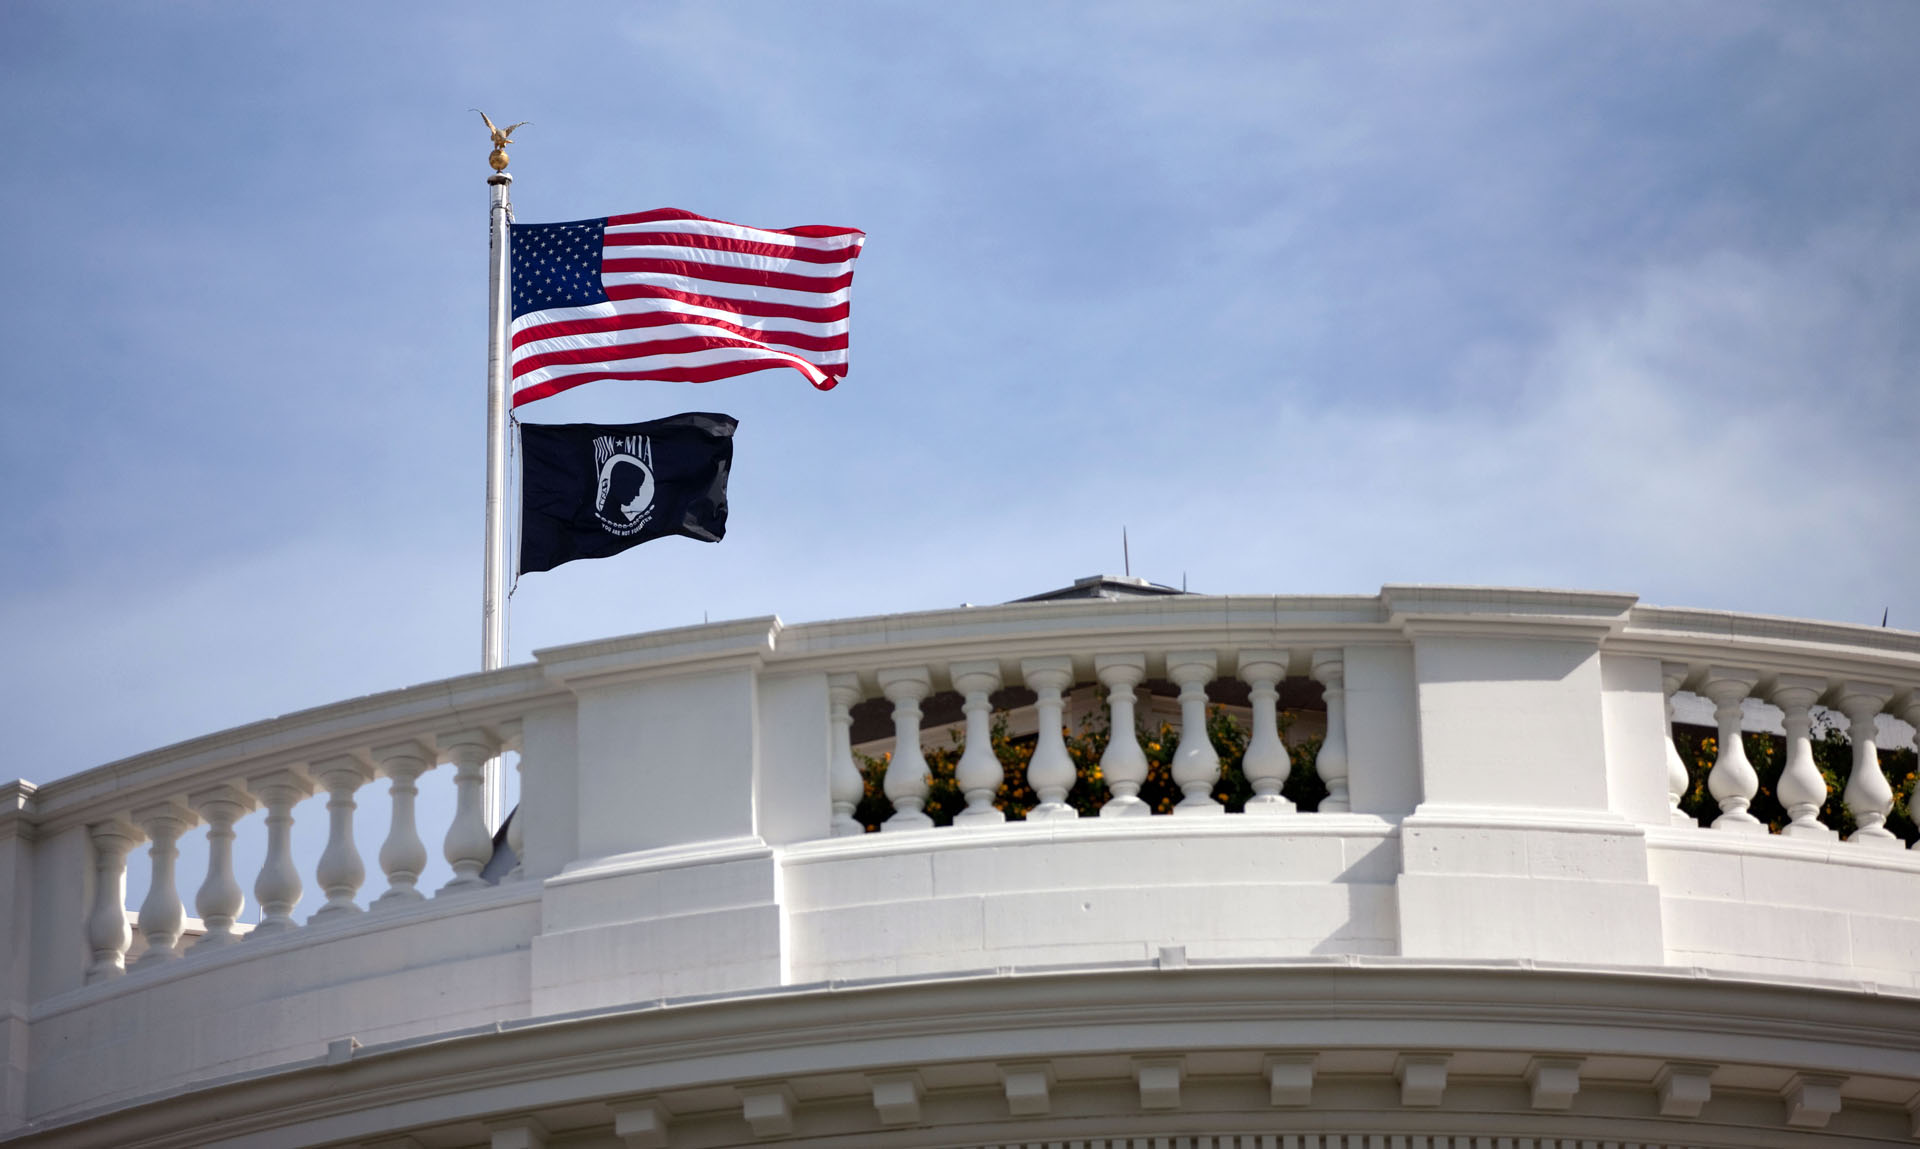 A POW-MIA flag flies over the White House